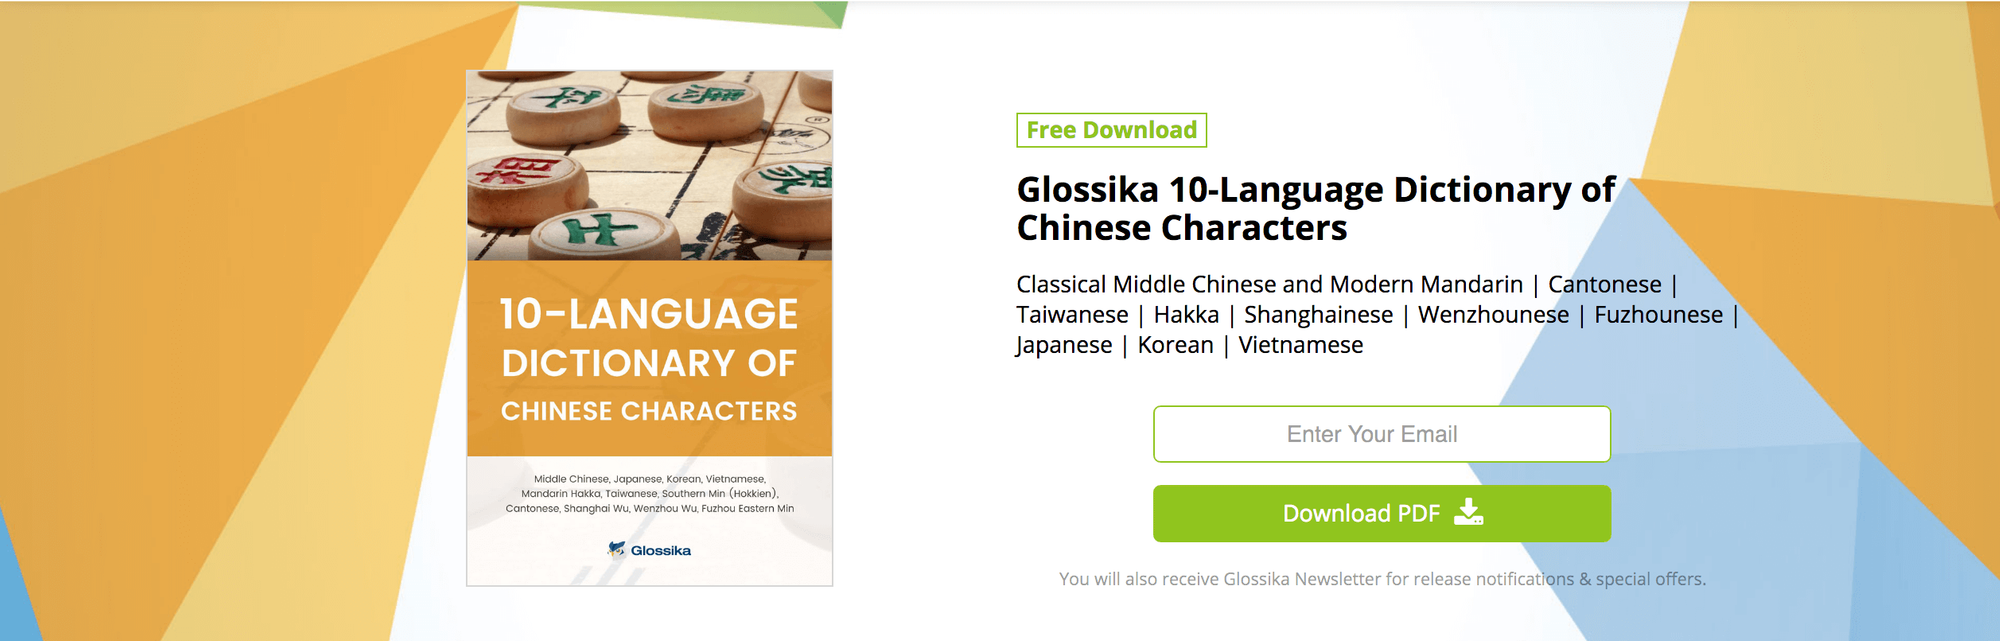 Free Download: 10-Language Dictionary of Chinese Characters